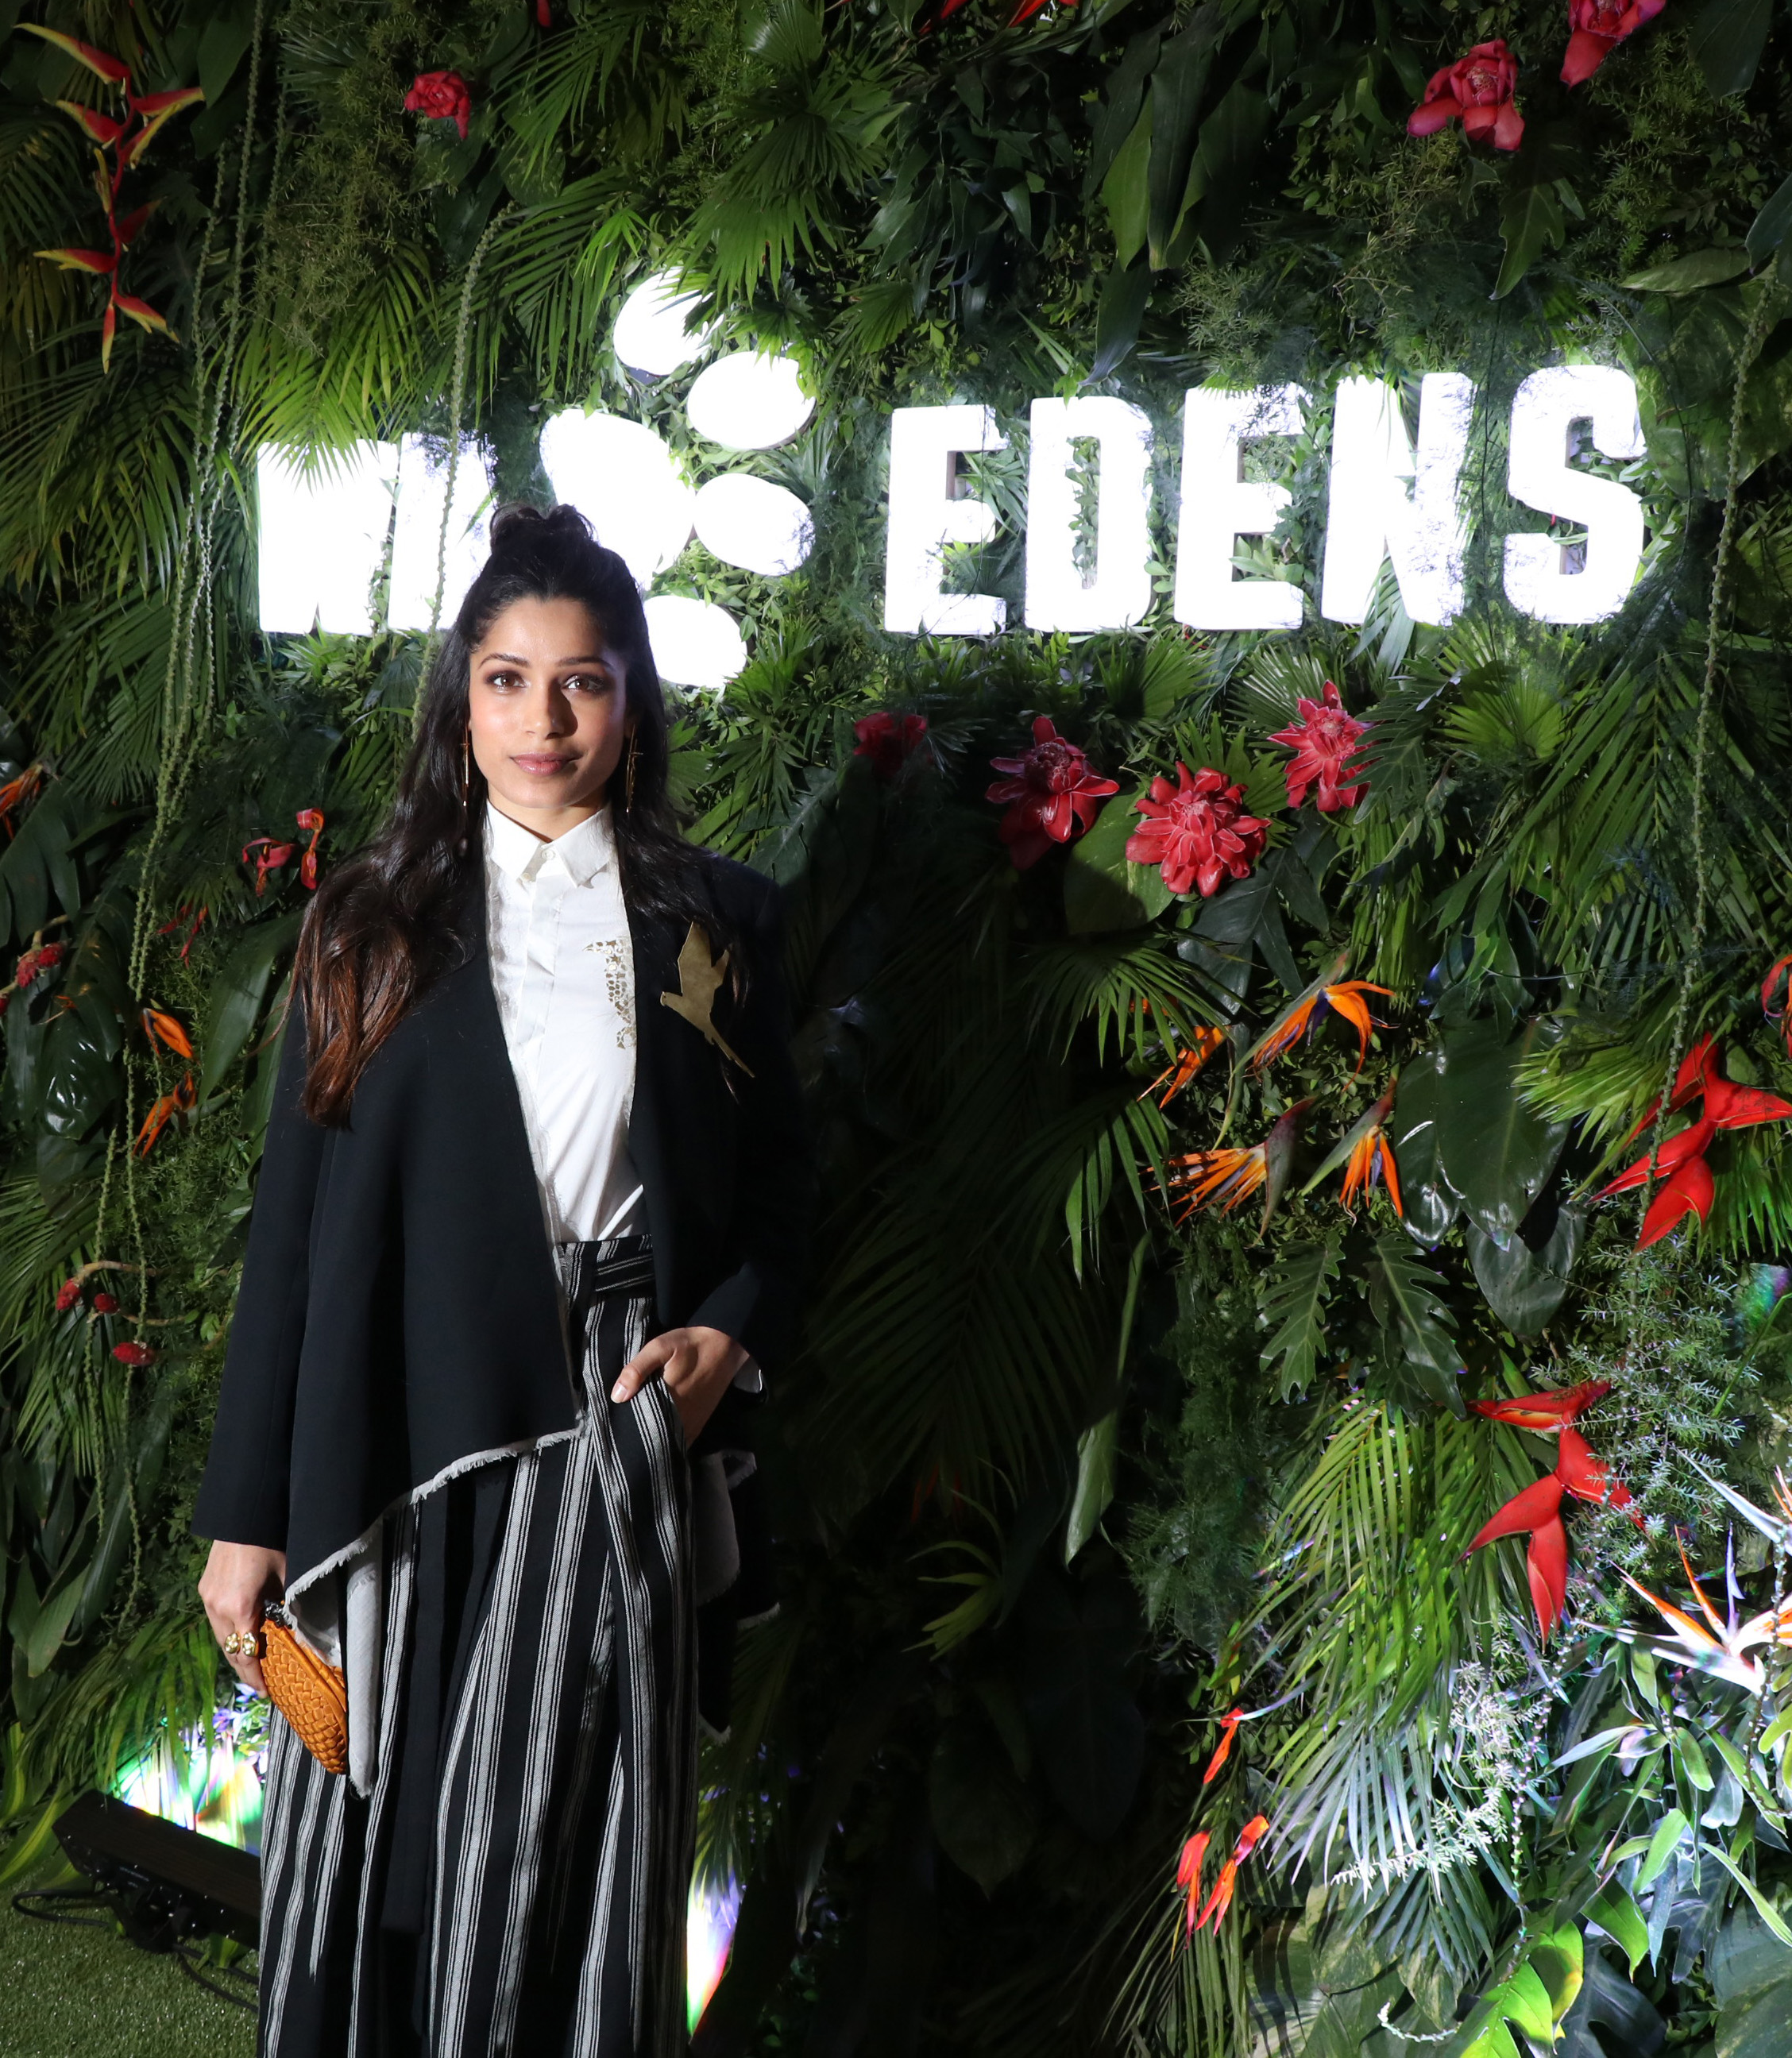 Wild Edens project Ambassador, actress and activist Freida Pinto at the premeire screening of 'Wild Edens_ South Asia' Documentary